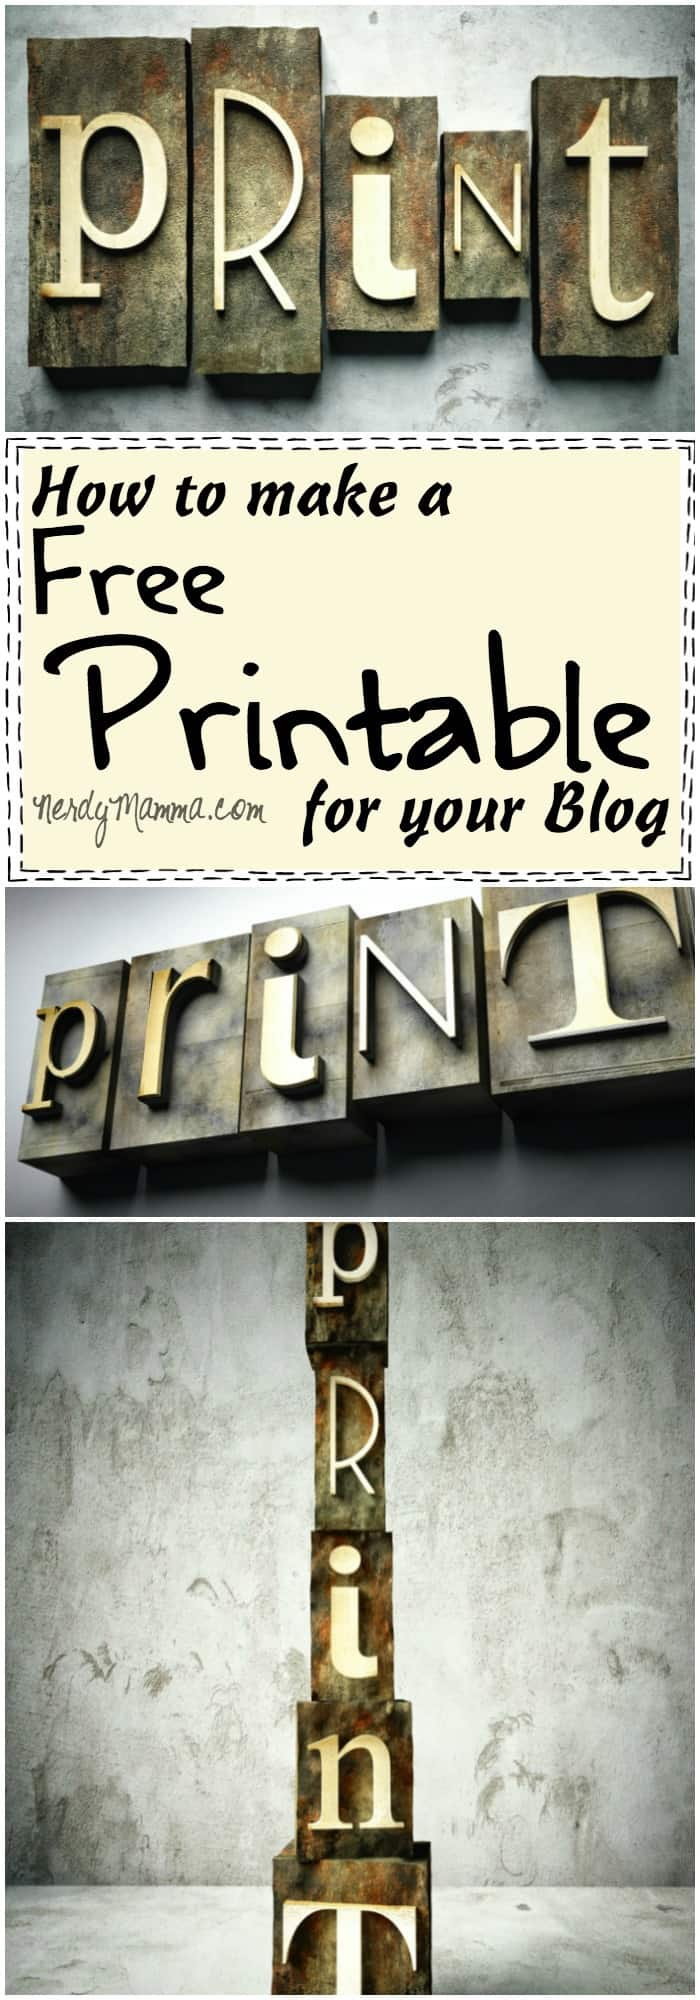 Such an easy tutorial for making a free printable for your blog! I love it!